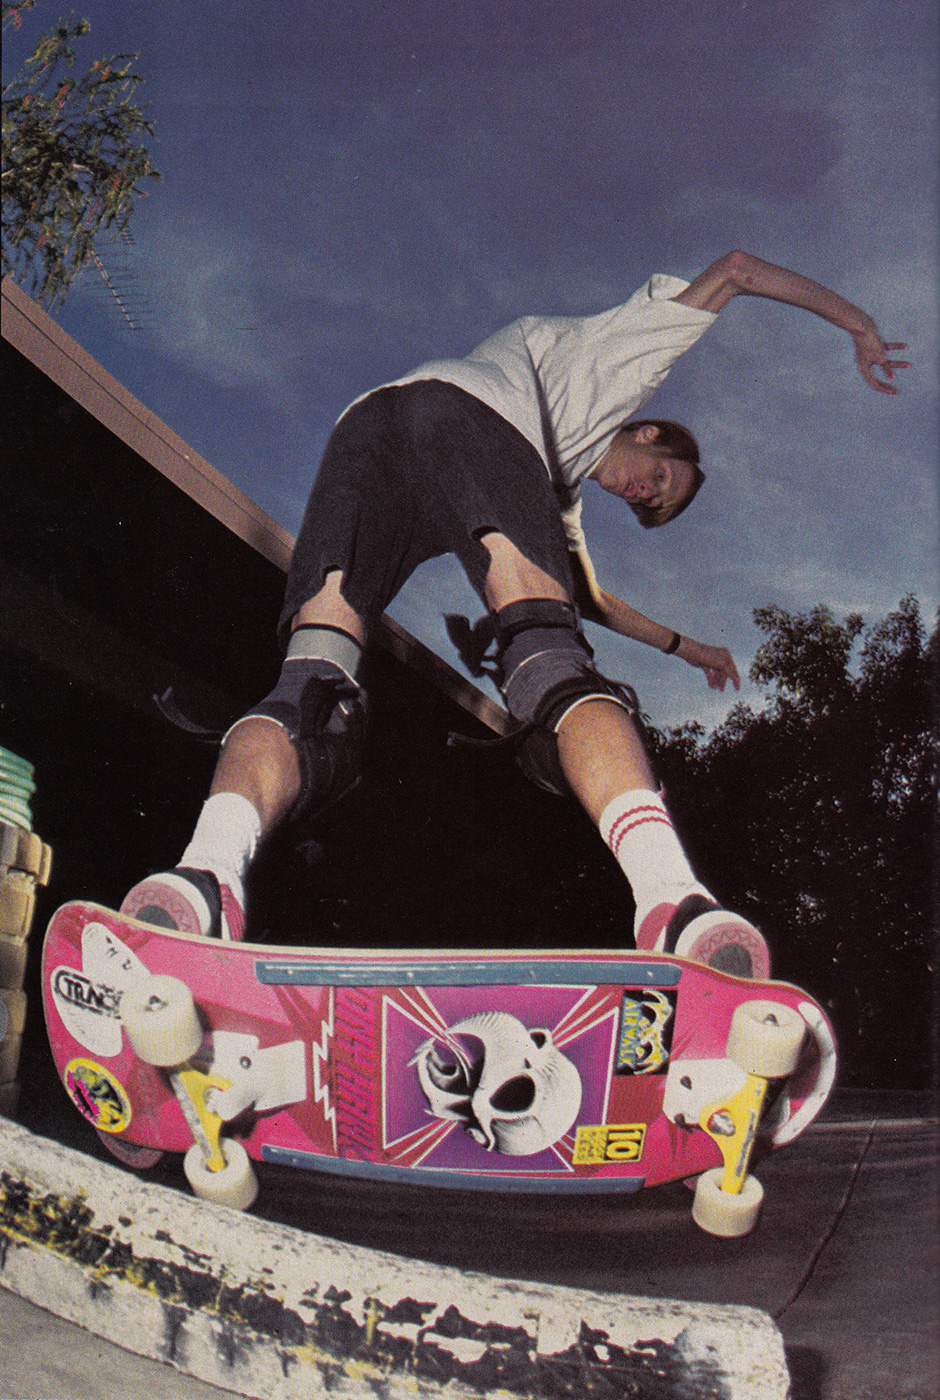 Reaffirming the fun with a lapper assisted edger on a curb in 1988. Photo: O